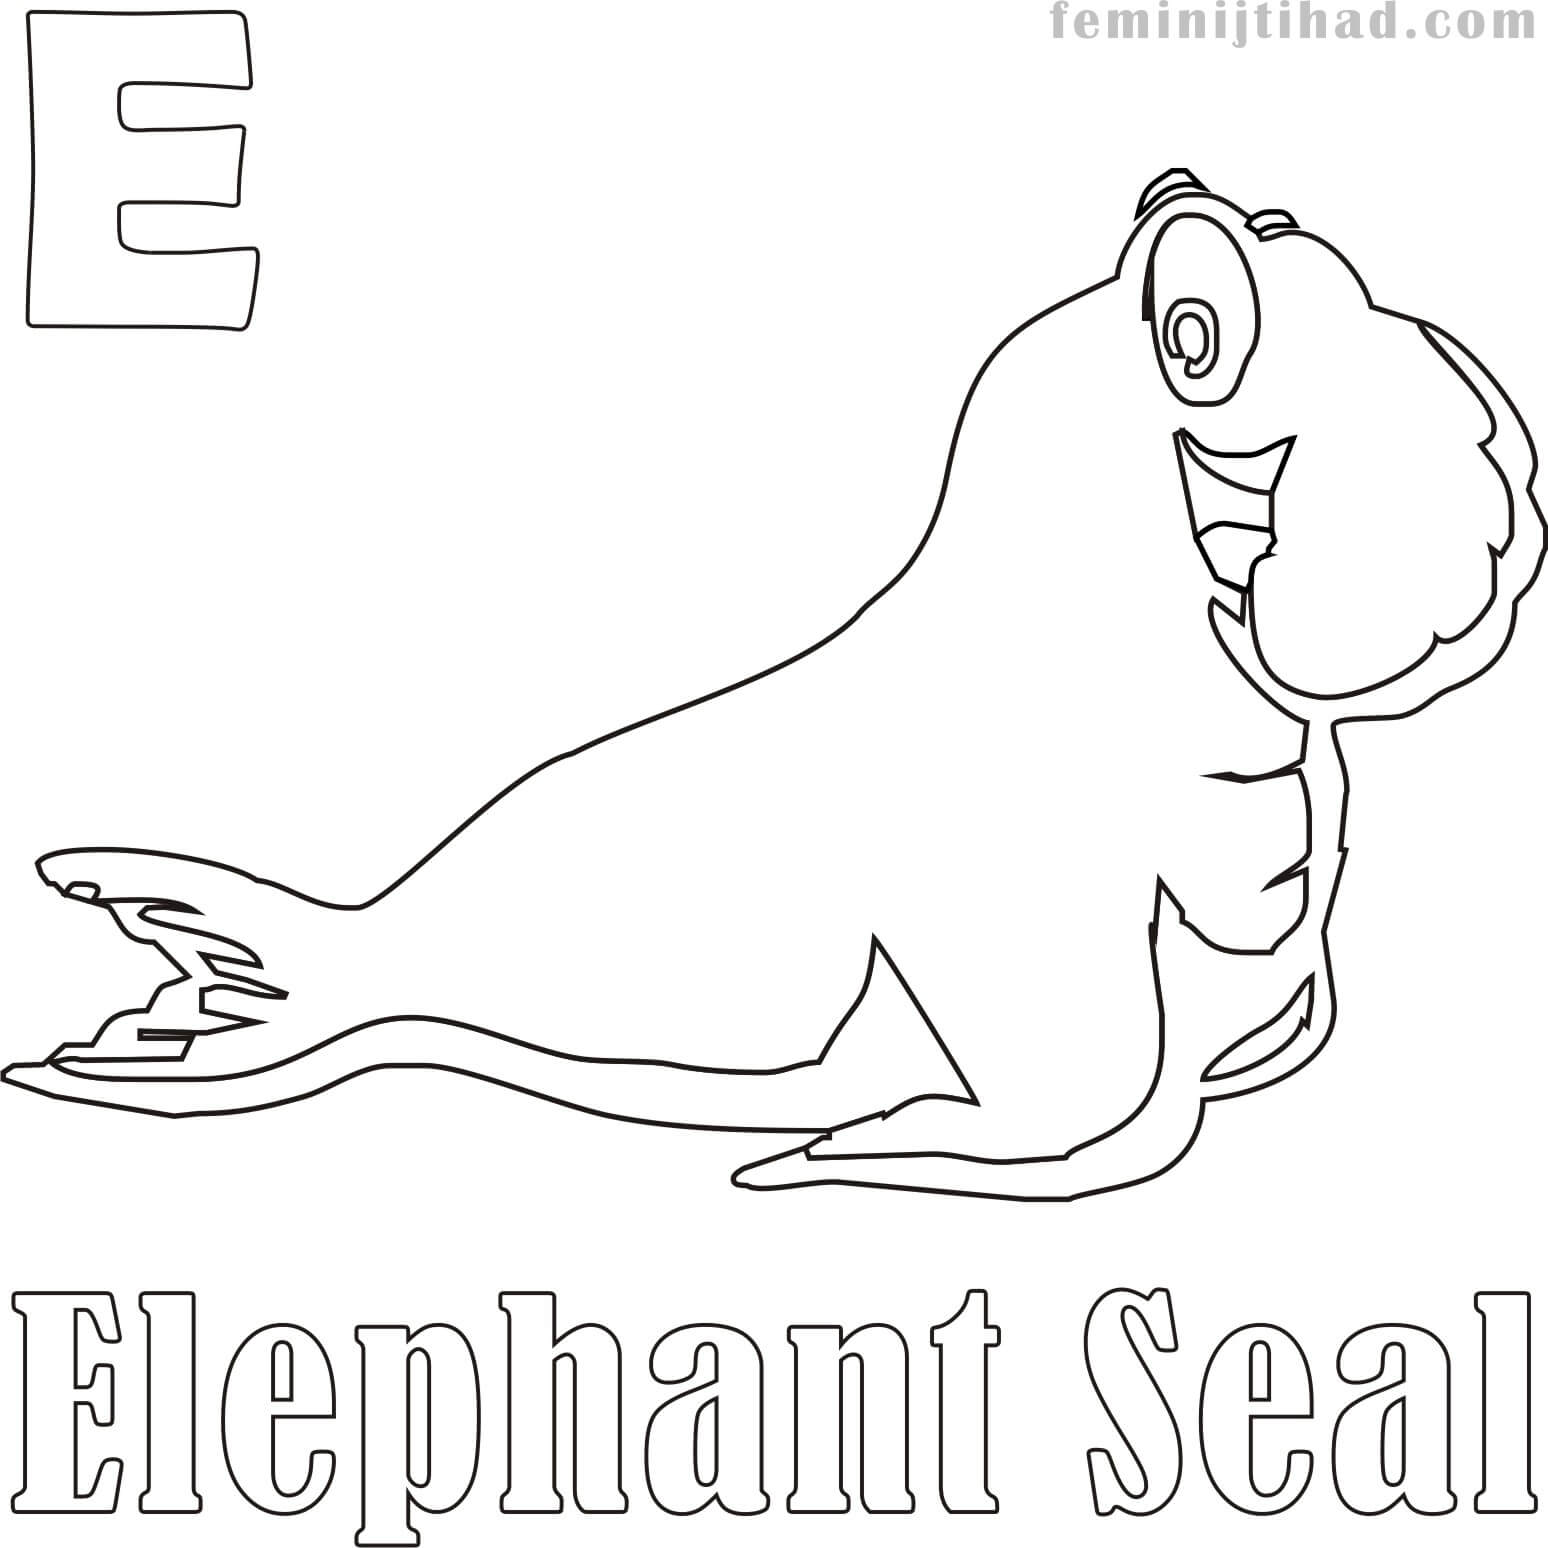 1548x1548 Elephant Seal Coloring Pages Coloring Pages For Kids